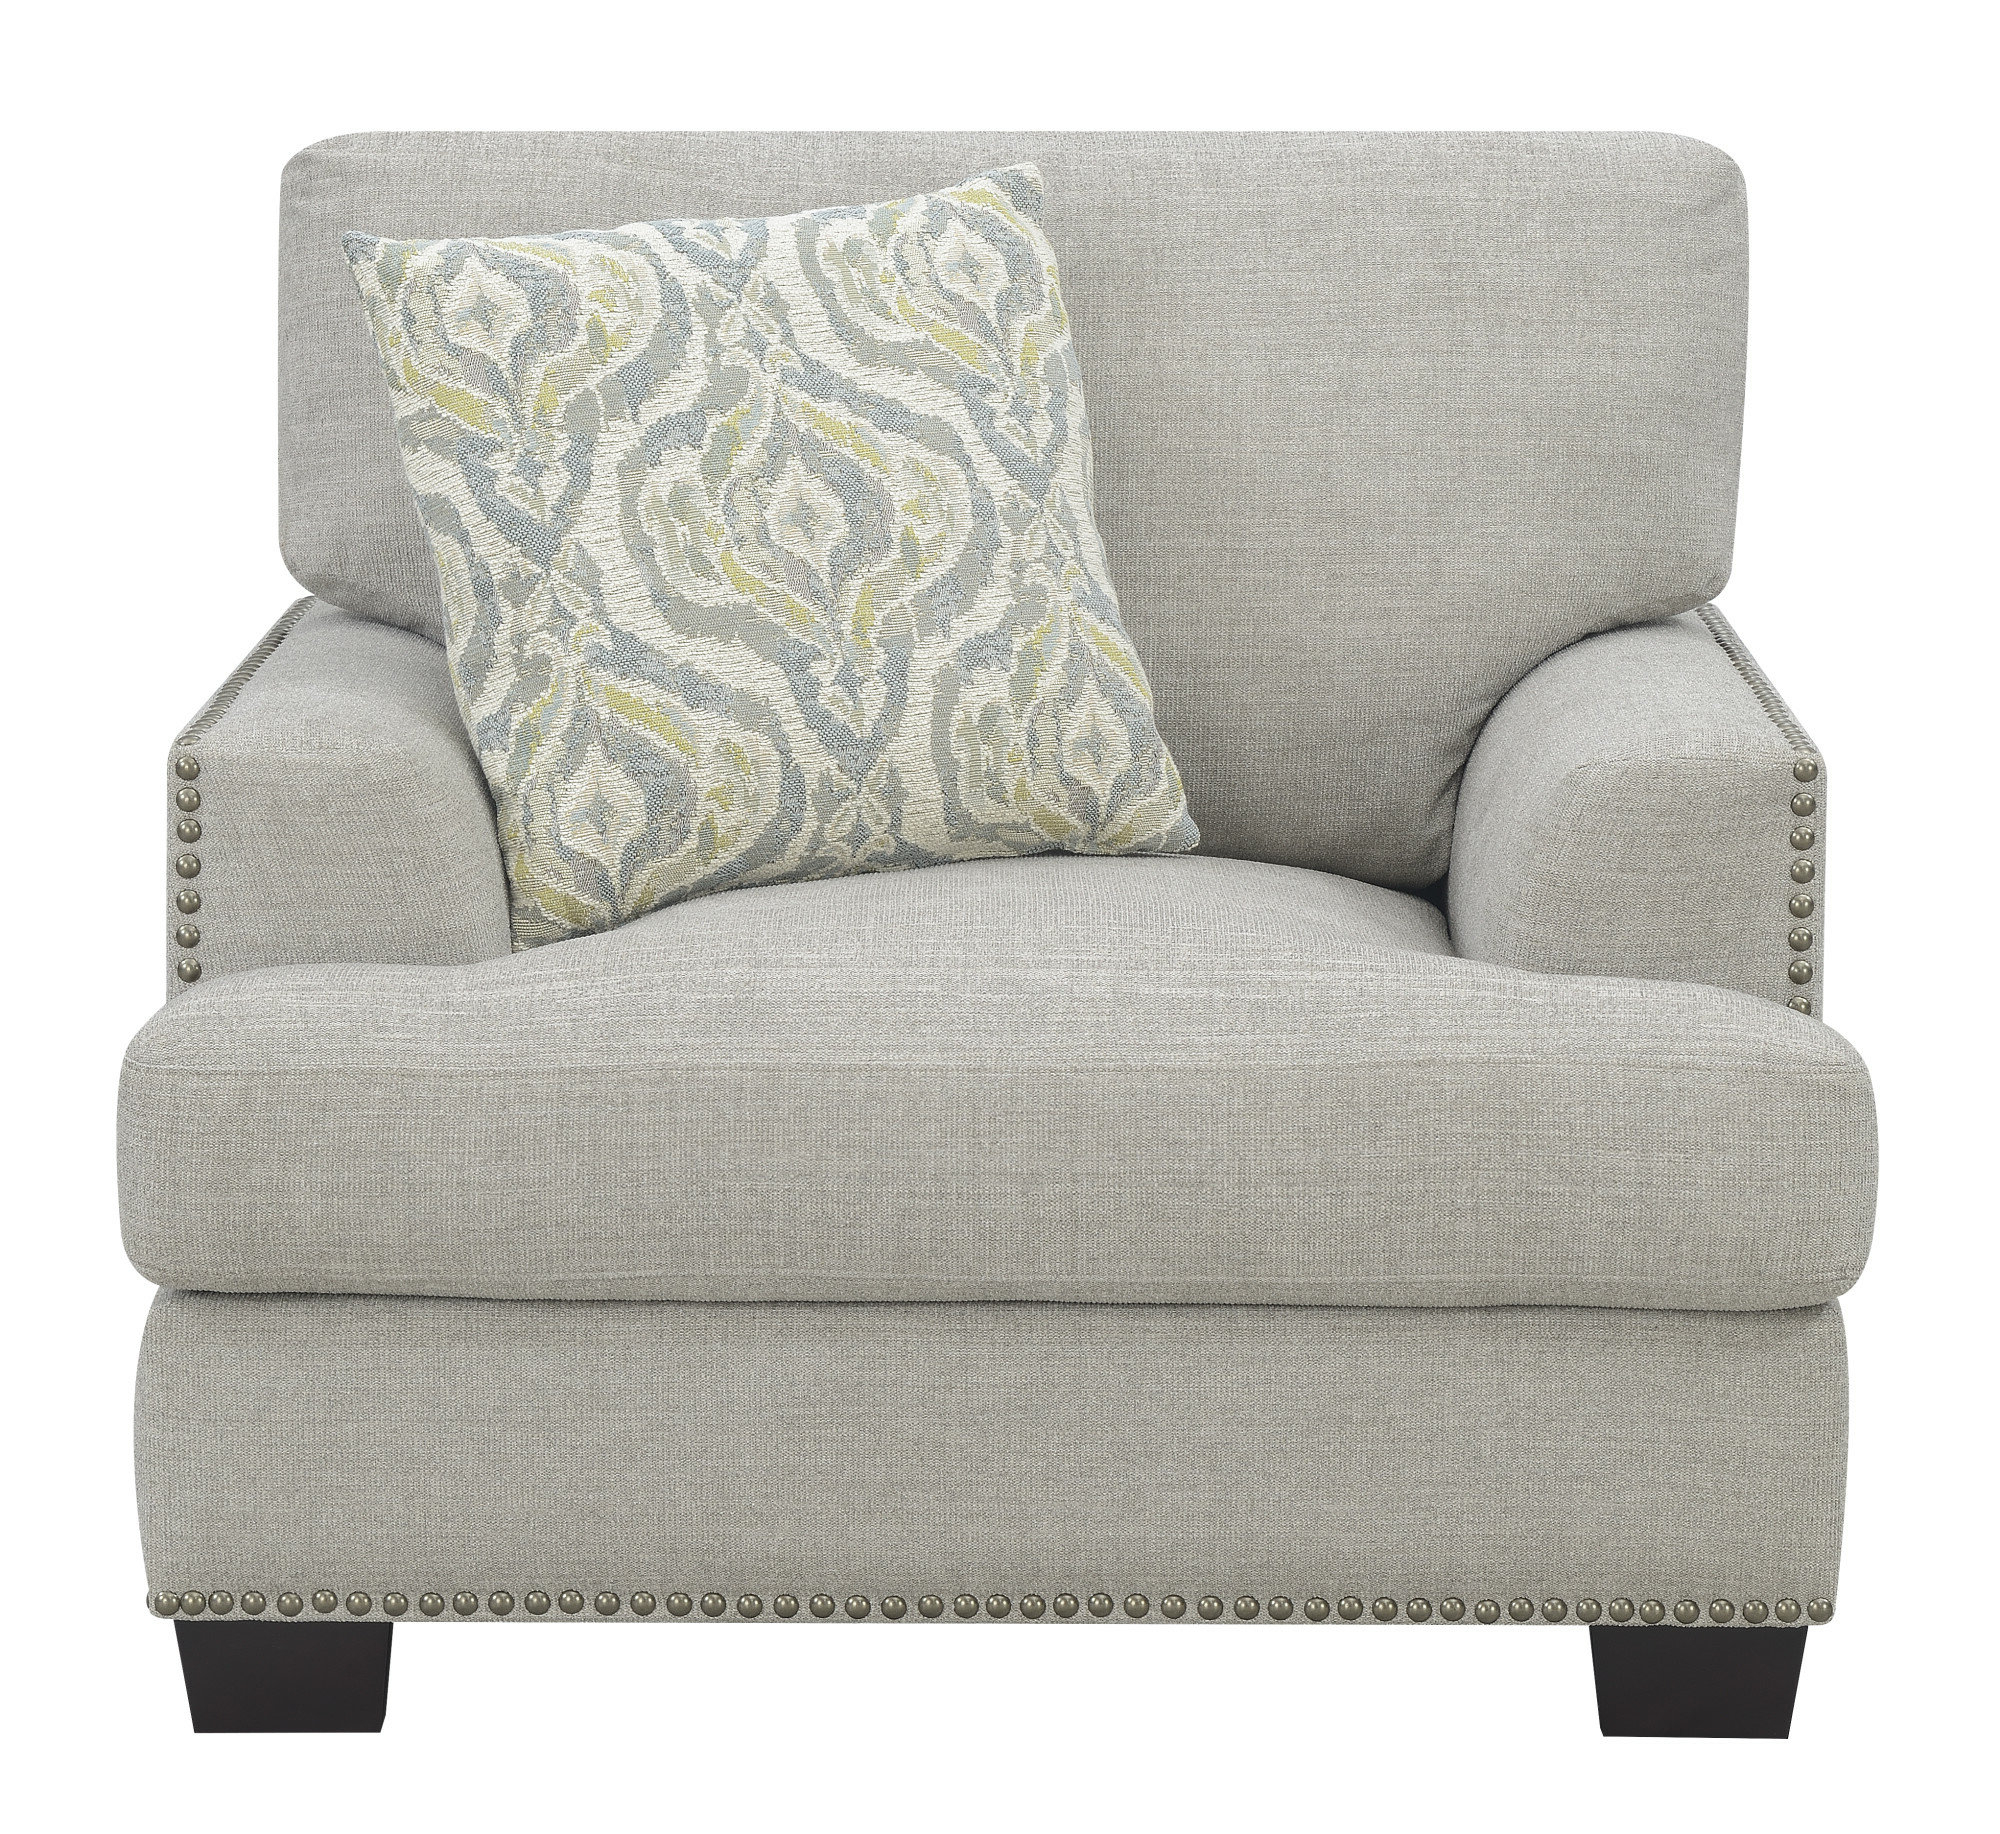 Widely Used Borst Armchairs In Highland Dunes Elvira Armchair (View 15 of 20)